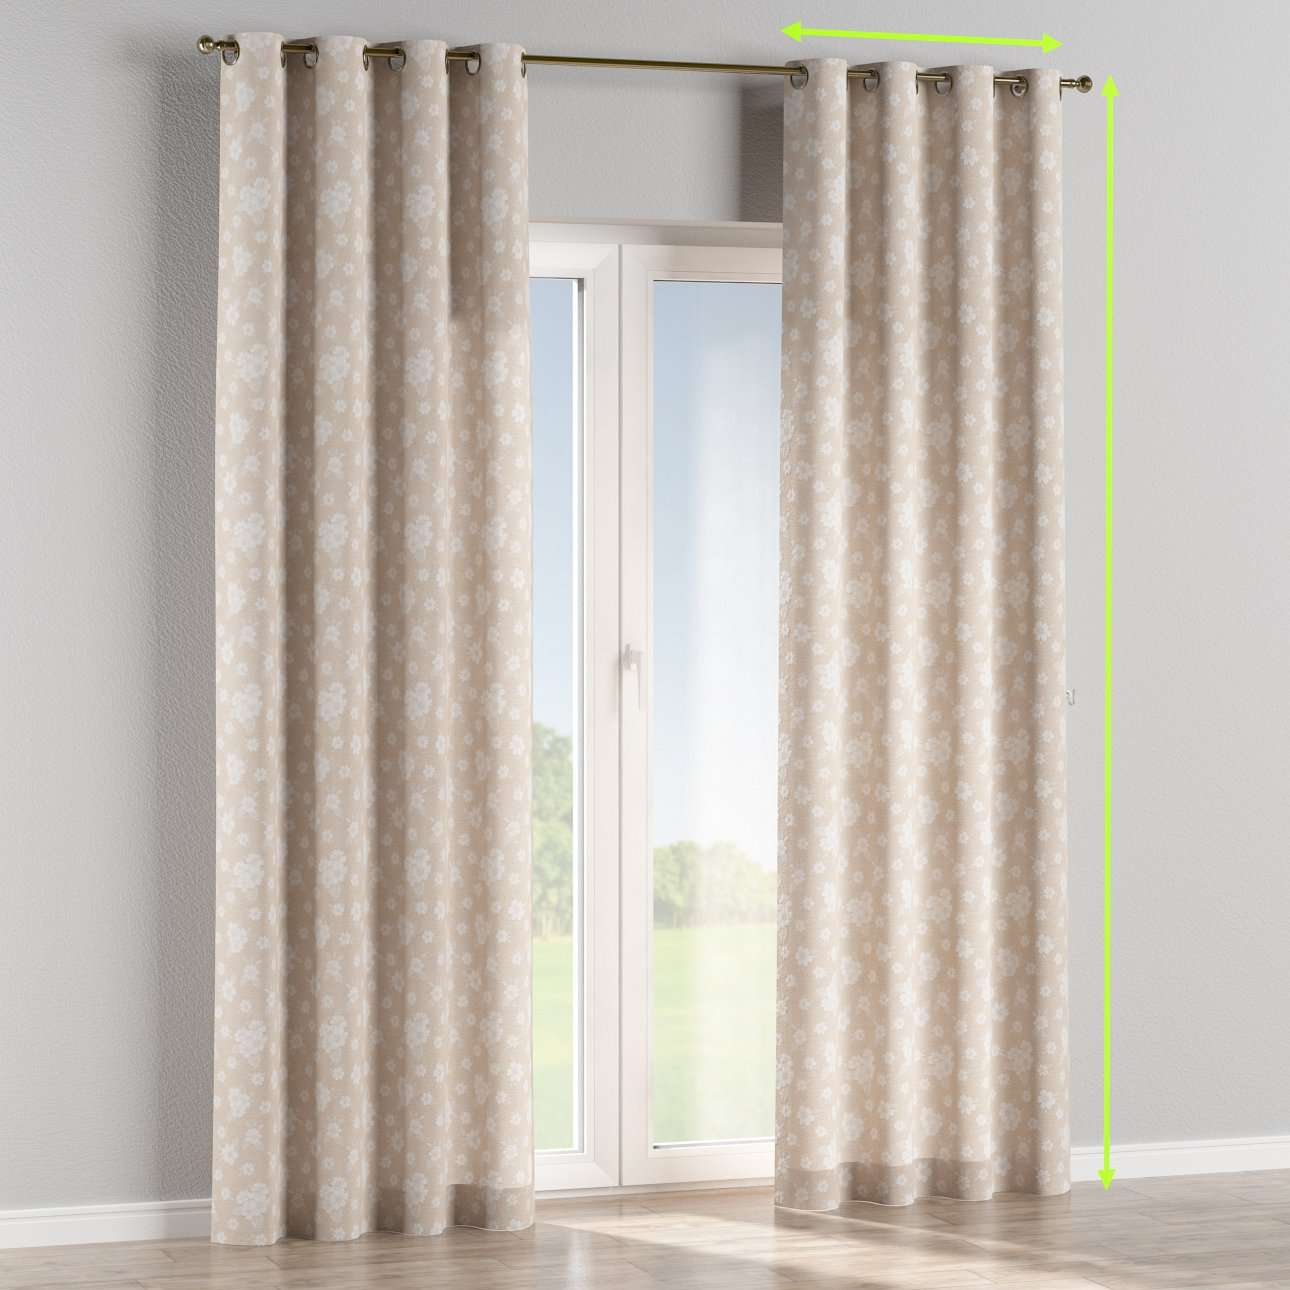 Eyelet curtains in collection Rustica, fabric: 138-26